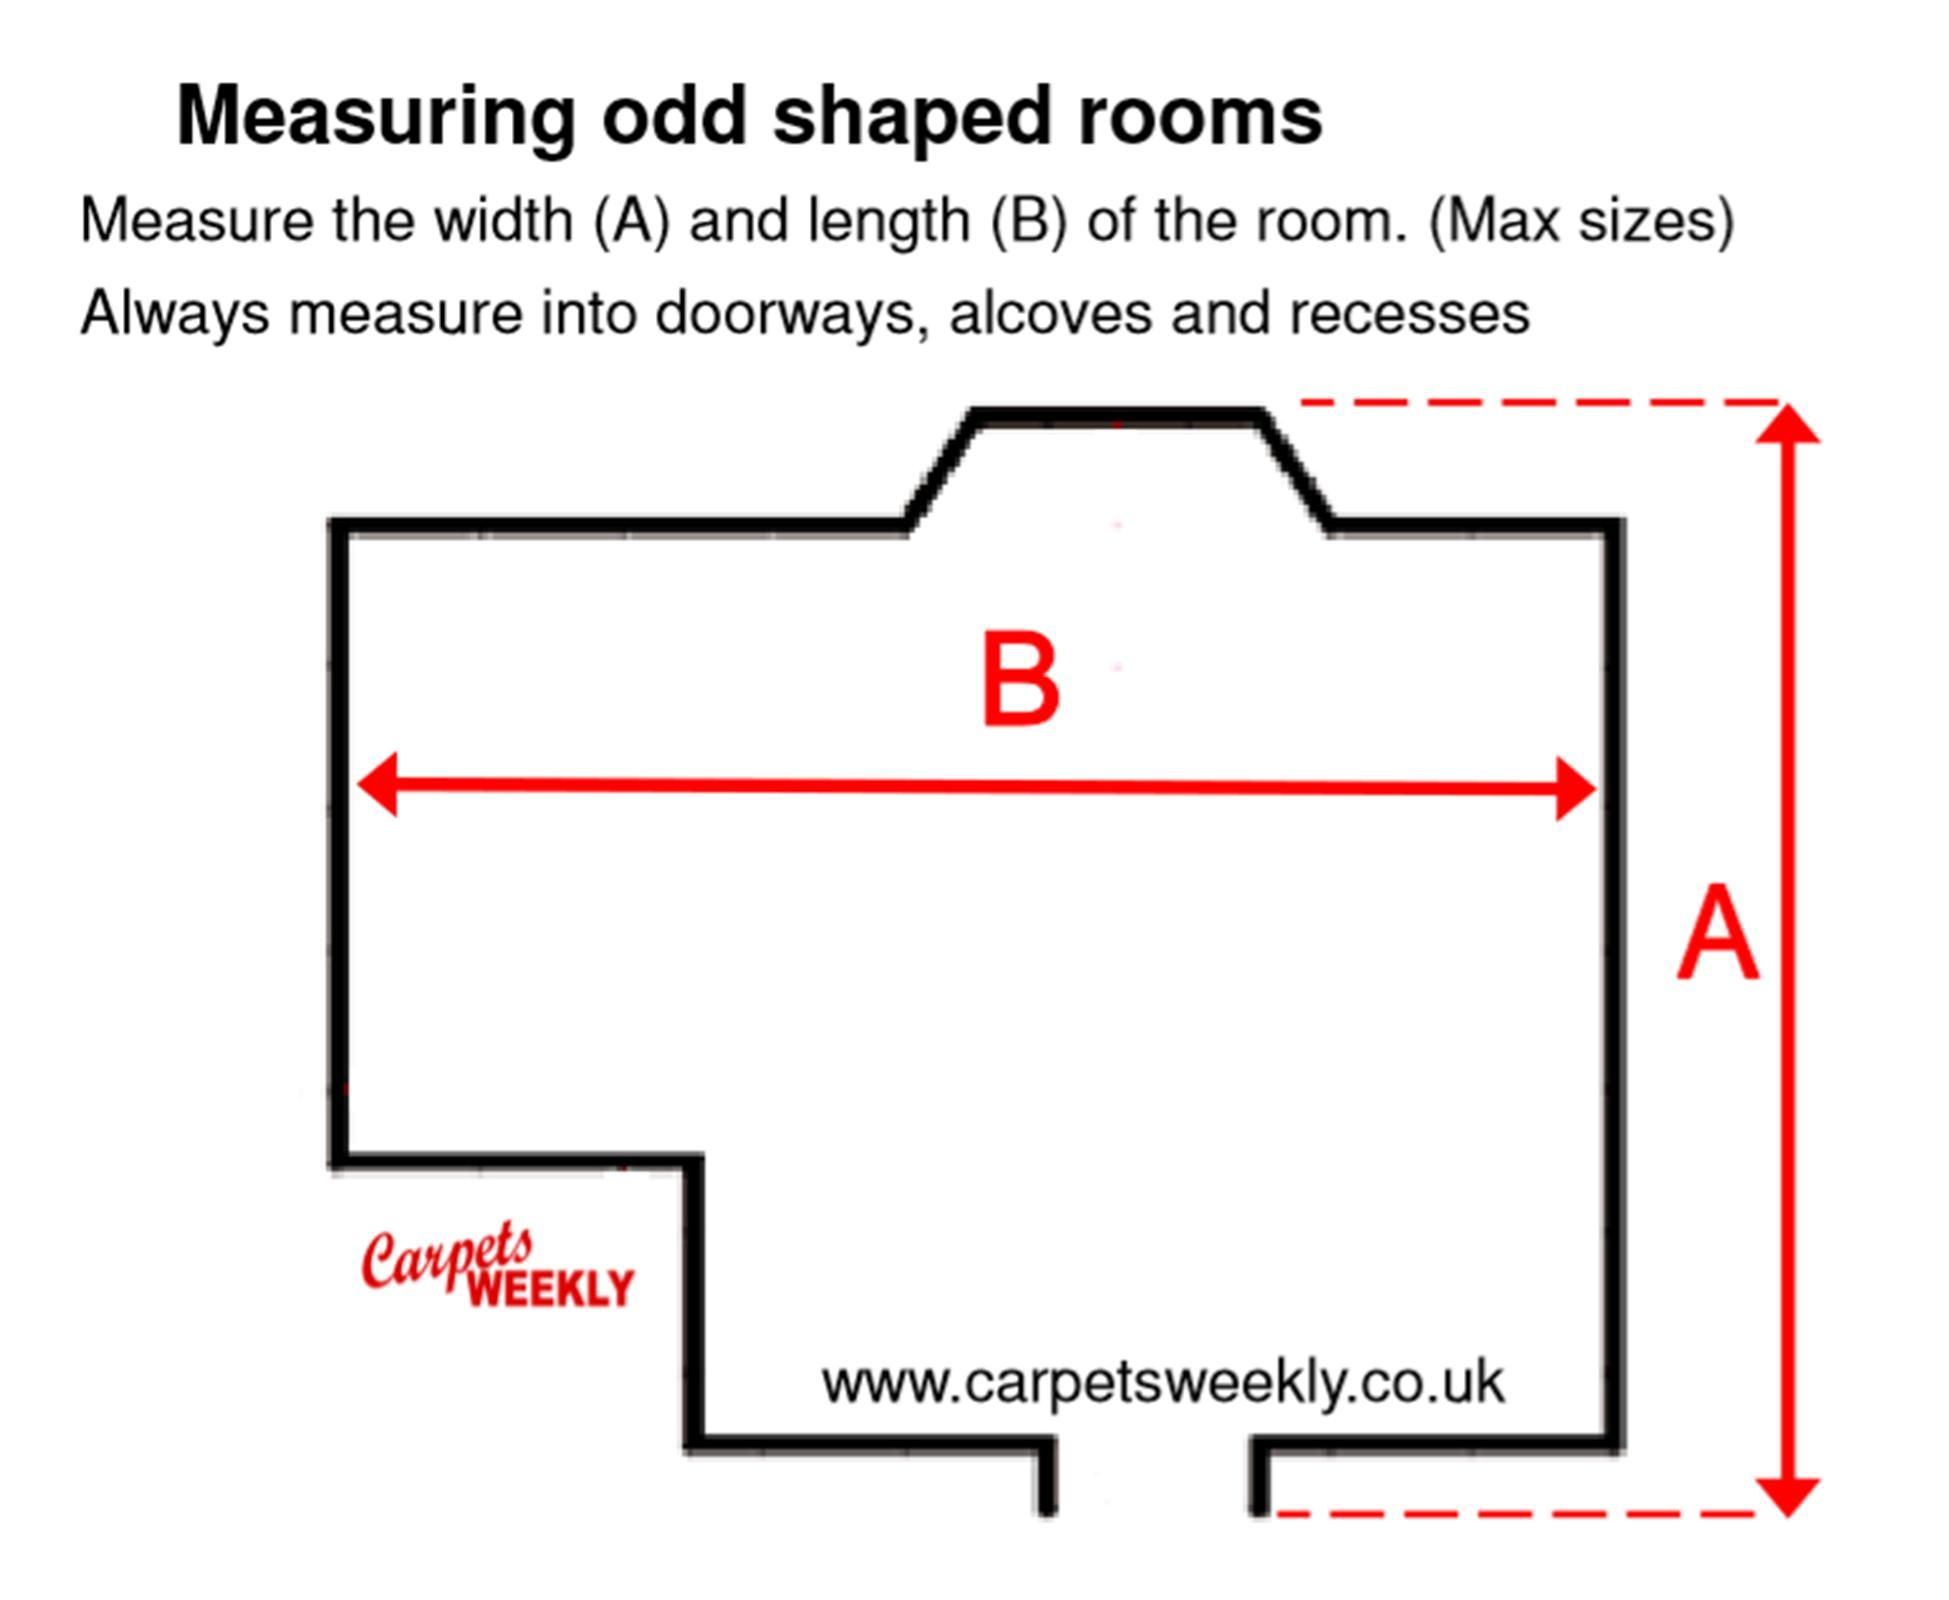 How to measure an odd shaped room for carpets and flooring. Carpets Weekly